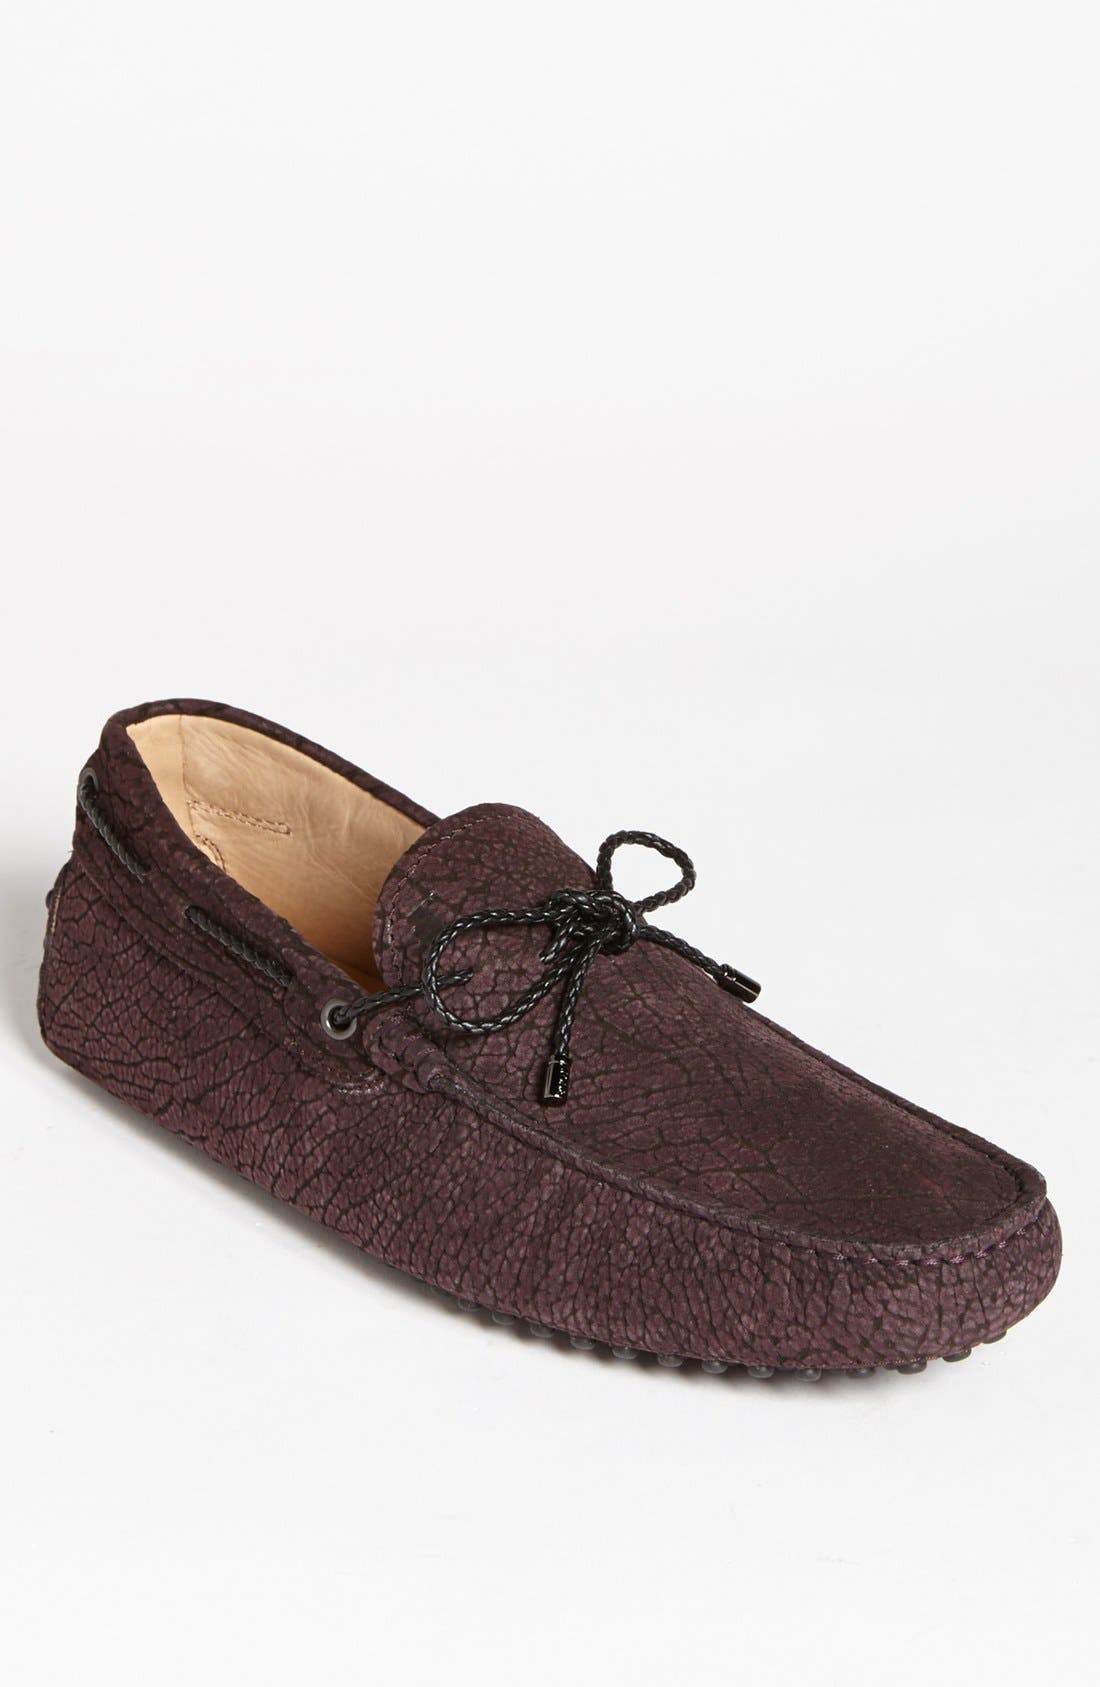 Alternate Image 1 Selected - Tod's 'Lacceto' Driving Shoe